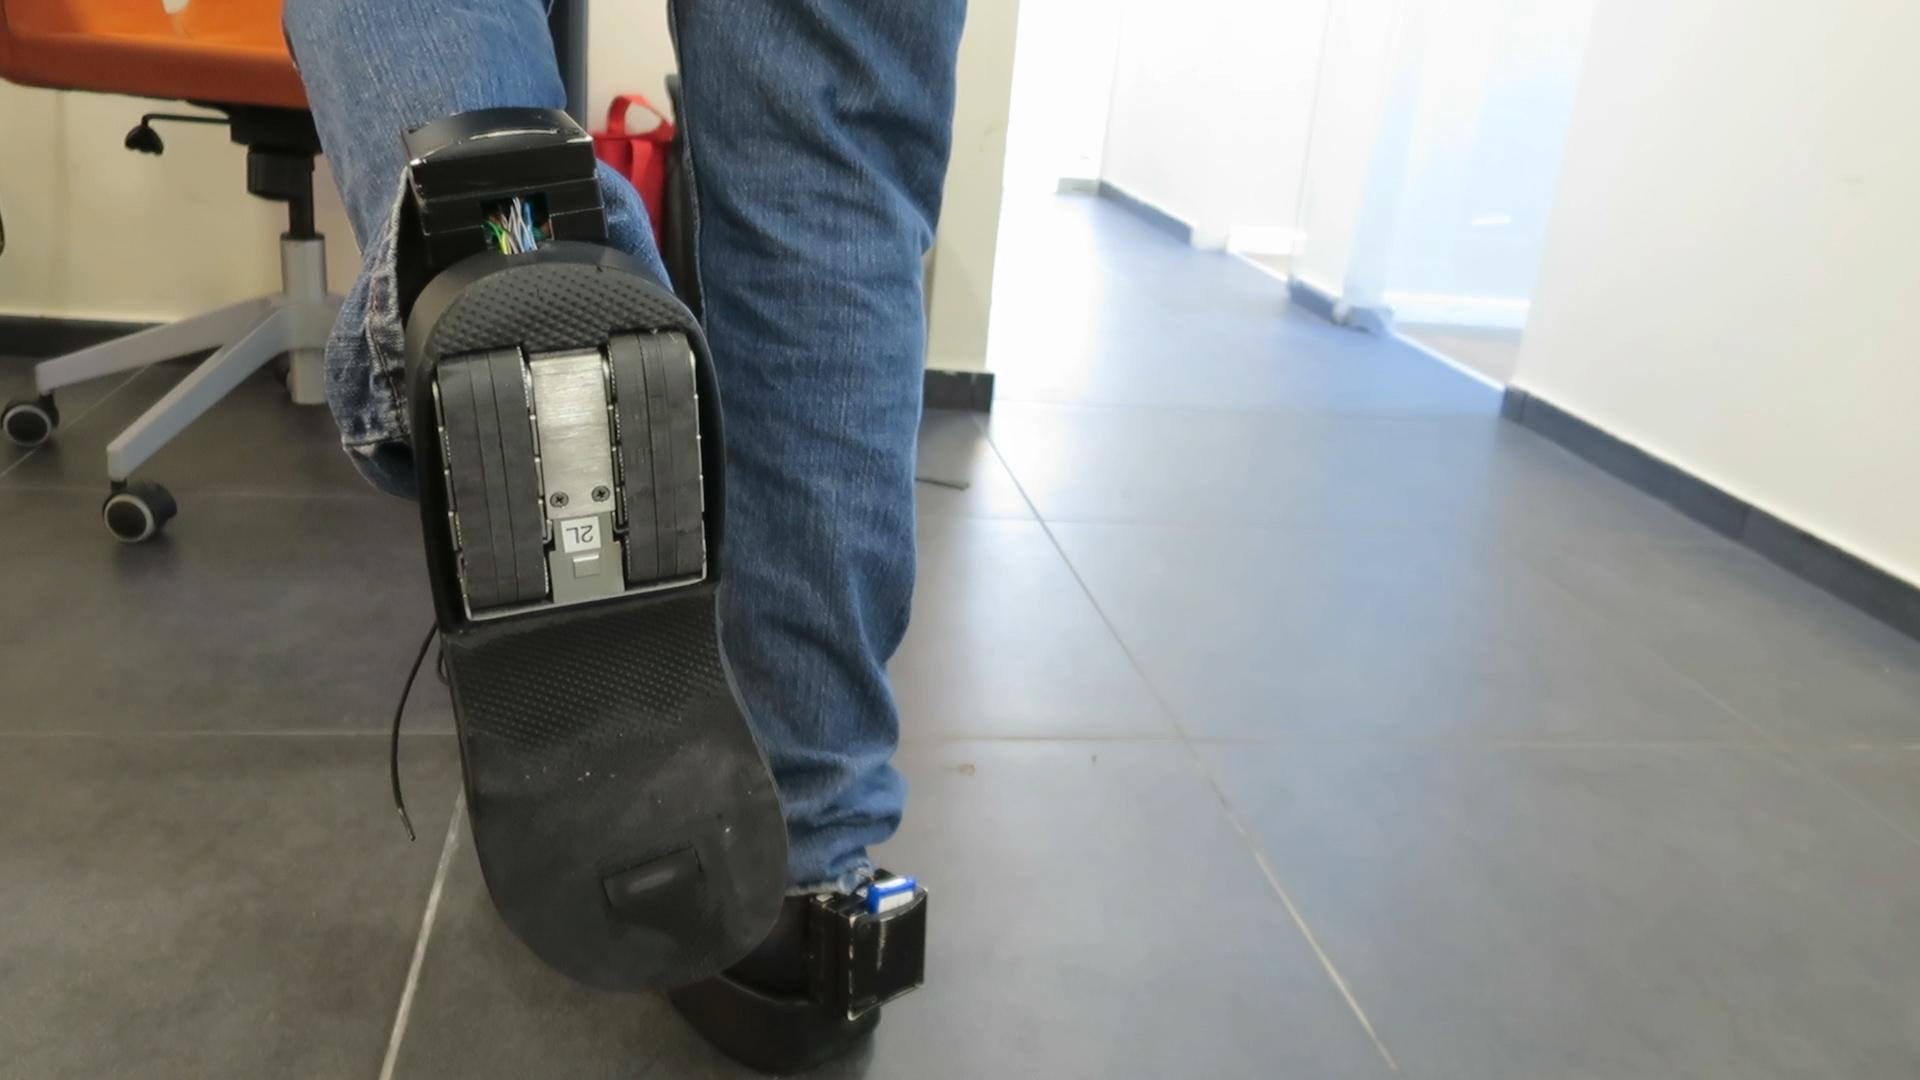 The B-Shoe Hopes To Prevent Seniors From Falling Down